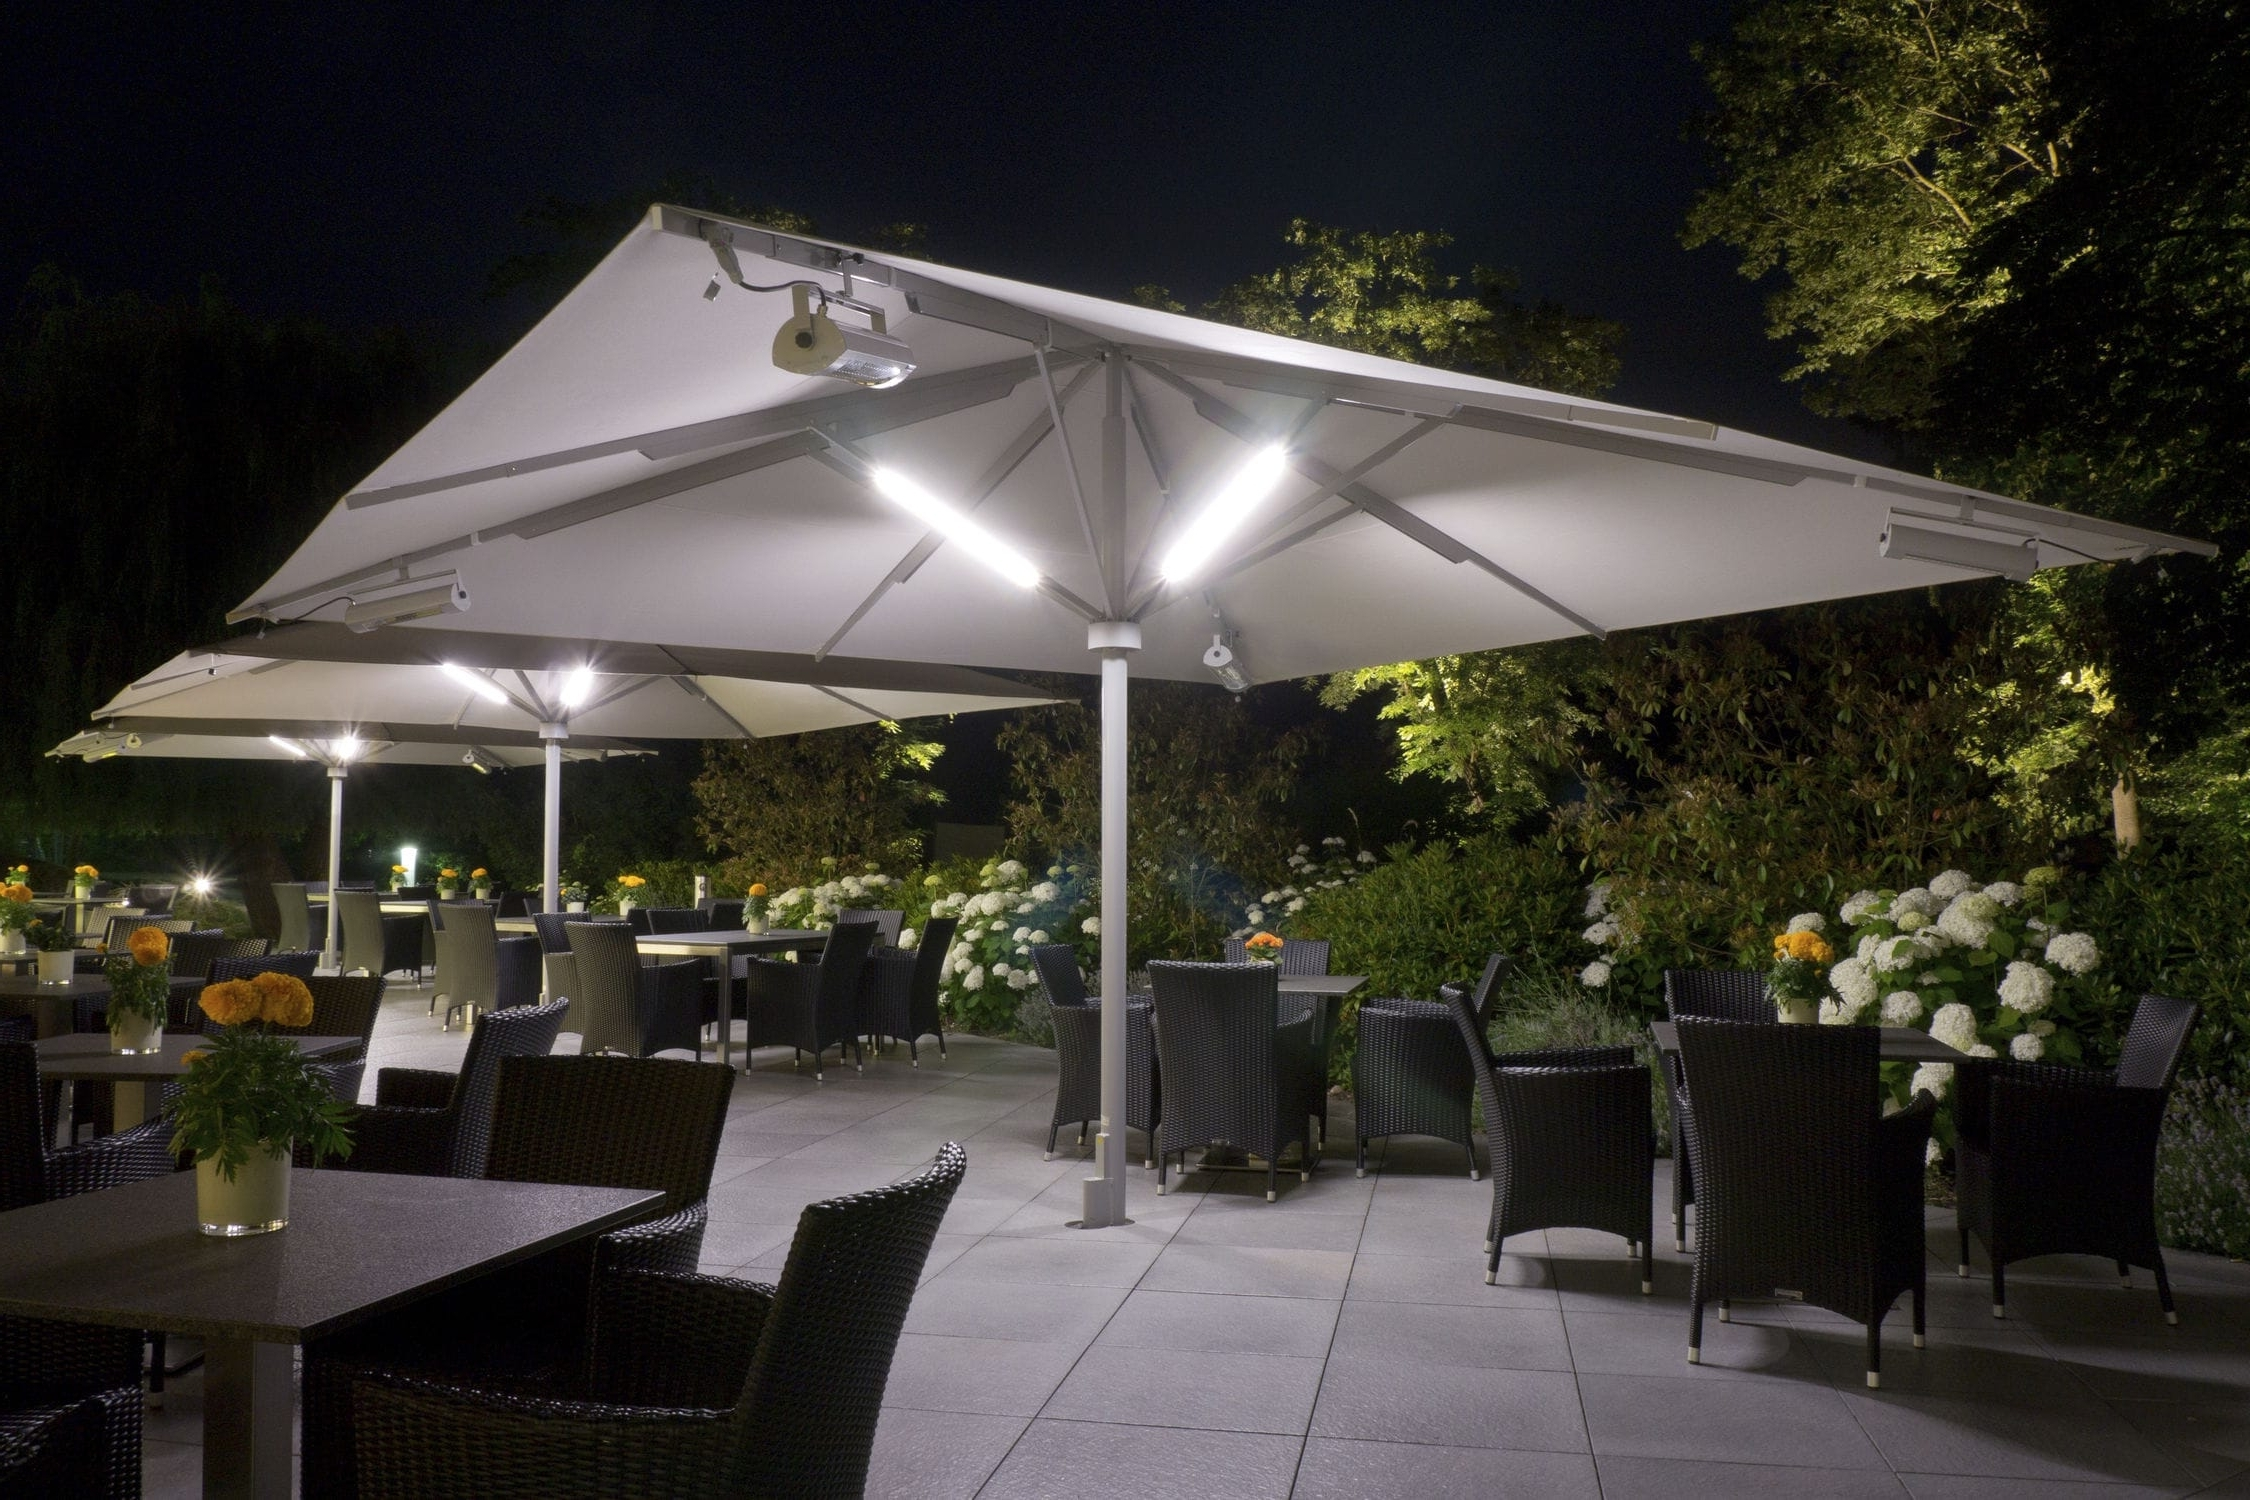 Patio Umbrellas With Solar Lights Within 2019 Best Patio Umbrella With Solar Lights And Speakers F71X About (View 14 of 20)